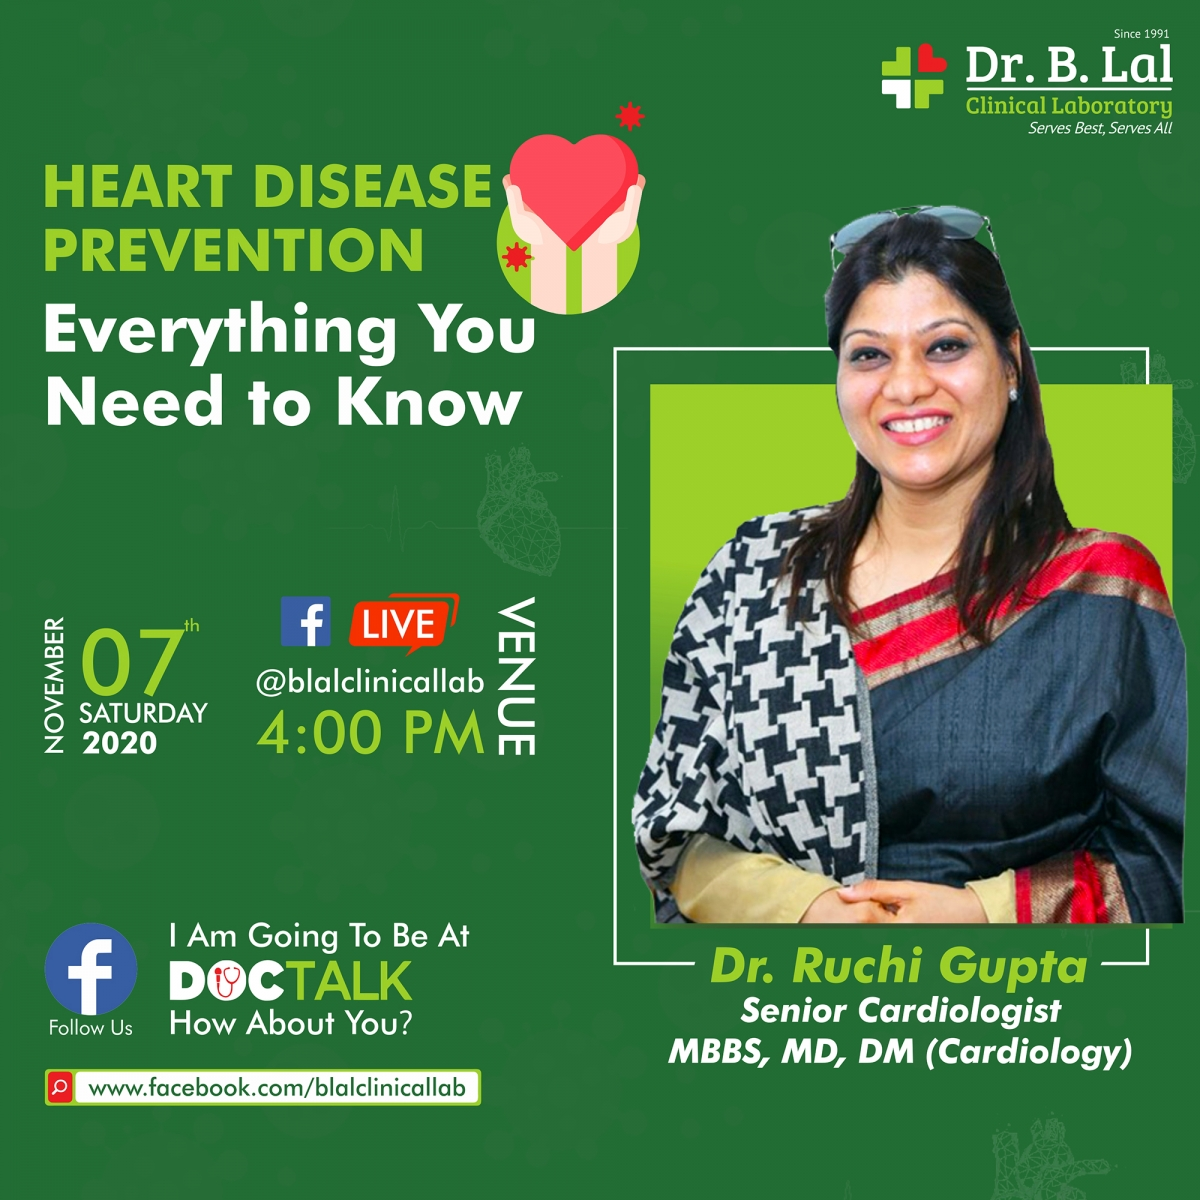 #DocTalk | Heart Disease Prevention | Dr. Ruchi Gupta, Senior Cardiologist, MBBS, MD, DM (Cardiology)